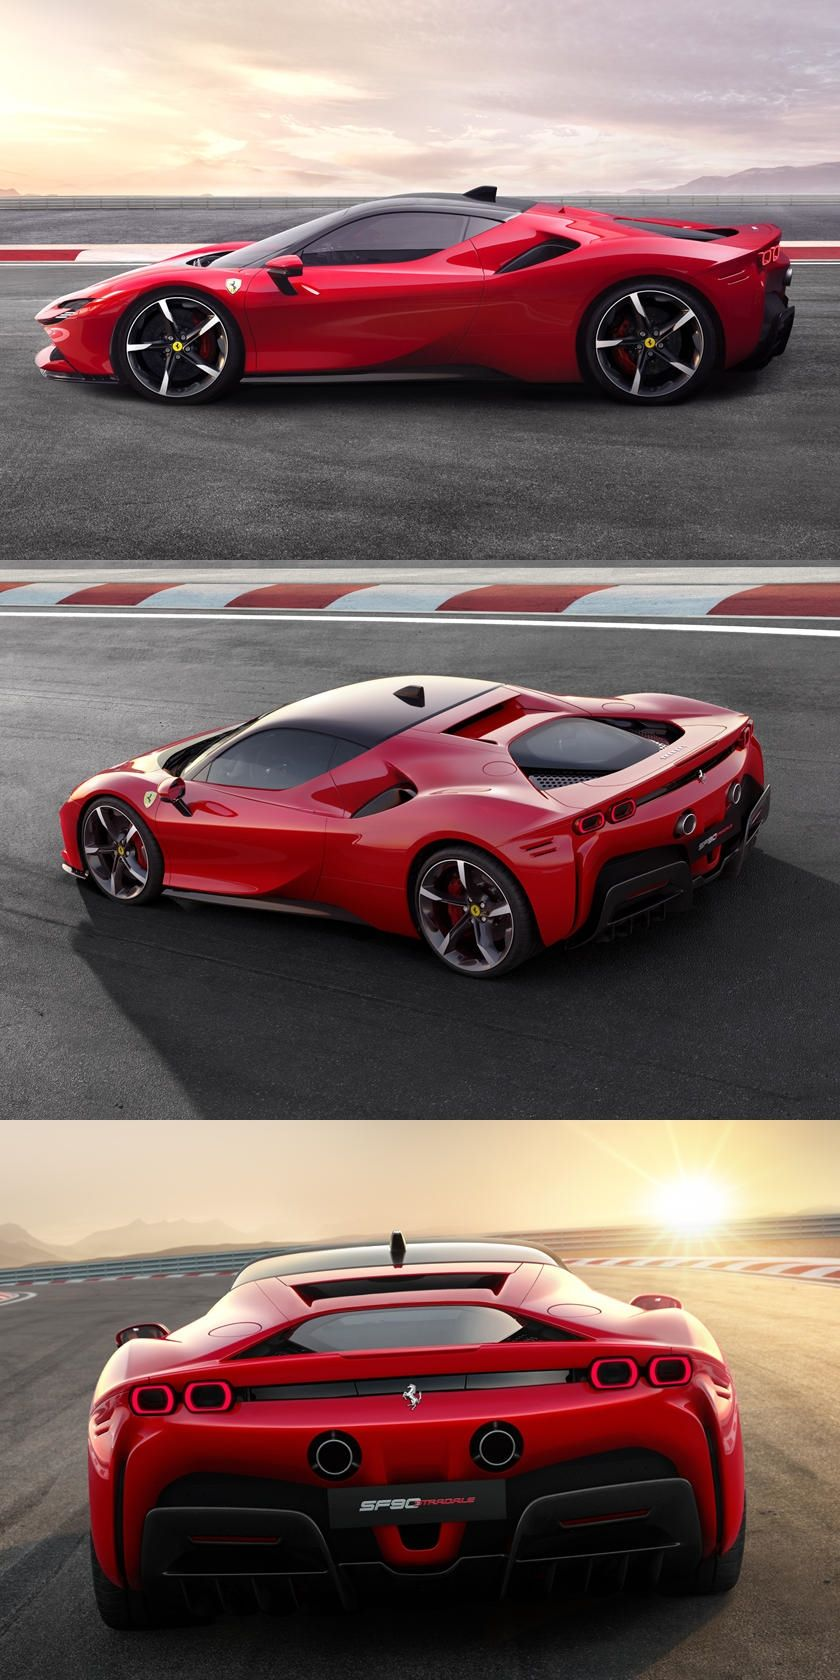 Ferrari Reminds The World Why It Builds The Best Supercars In 2020 Super Cars Ferrari Top Luxury Cars